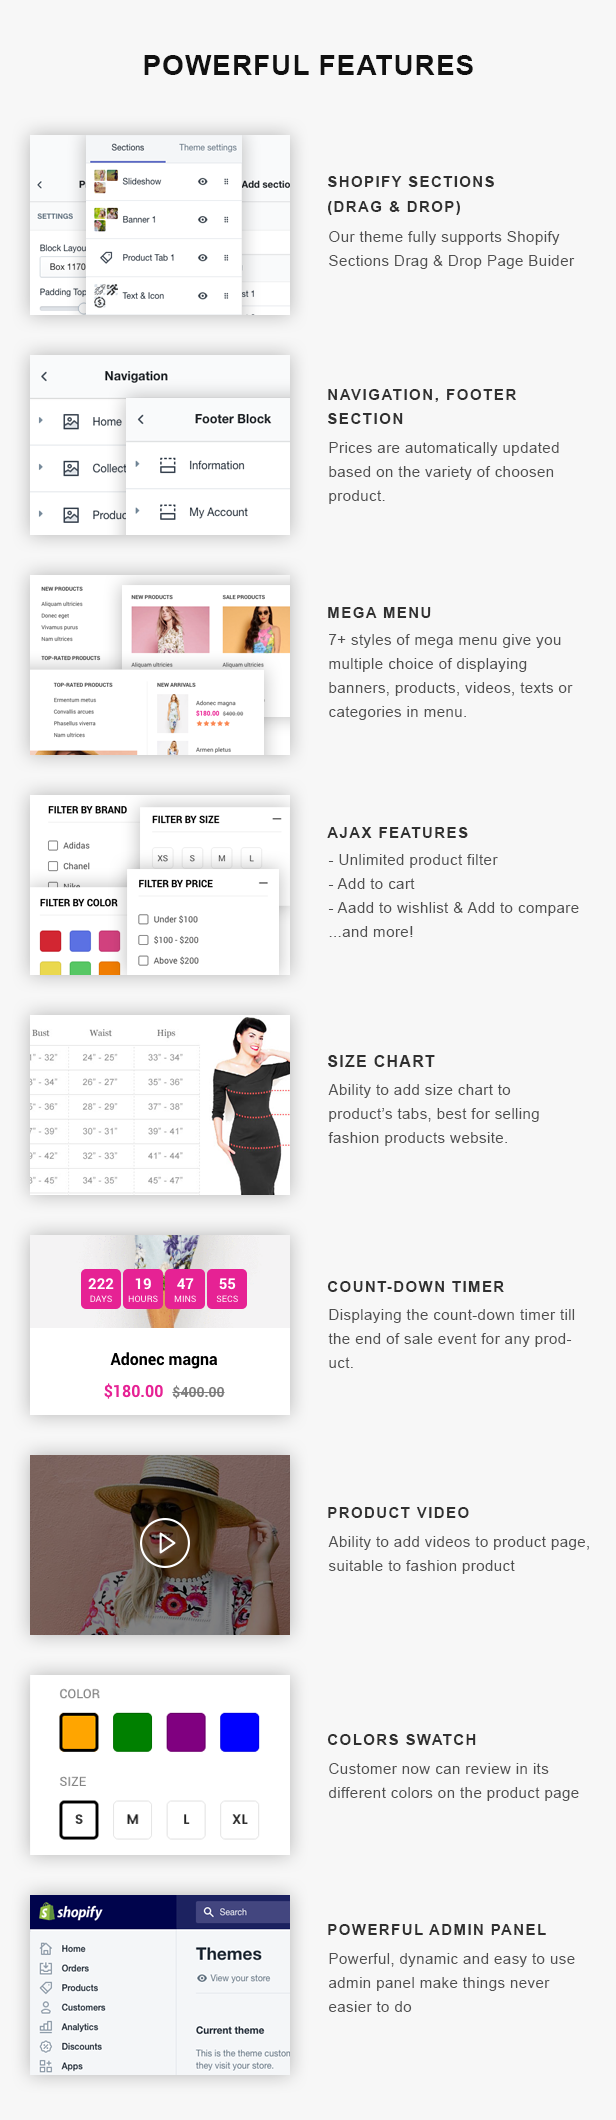 Dresses - Responsive, Drap & Drop Shopify Theme